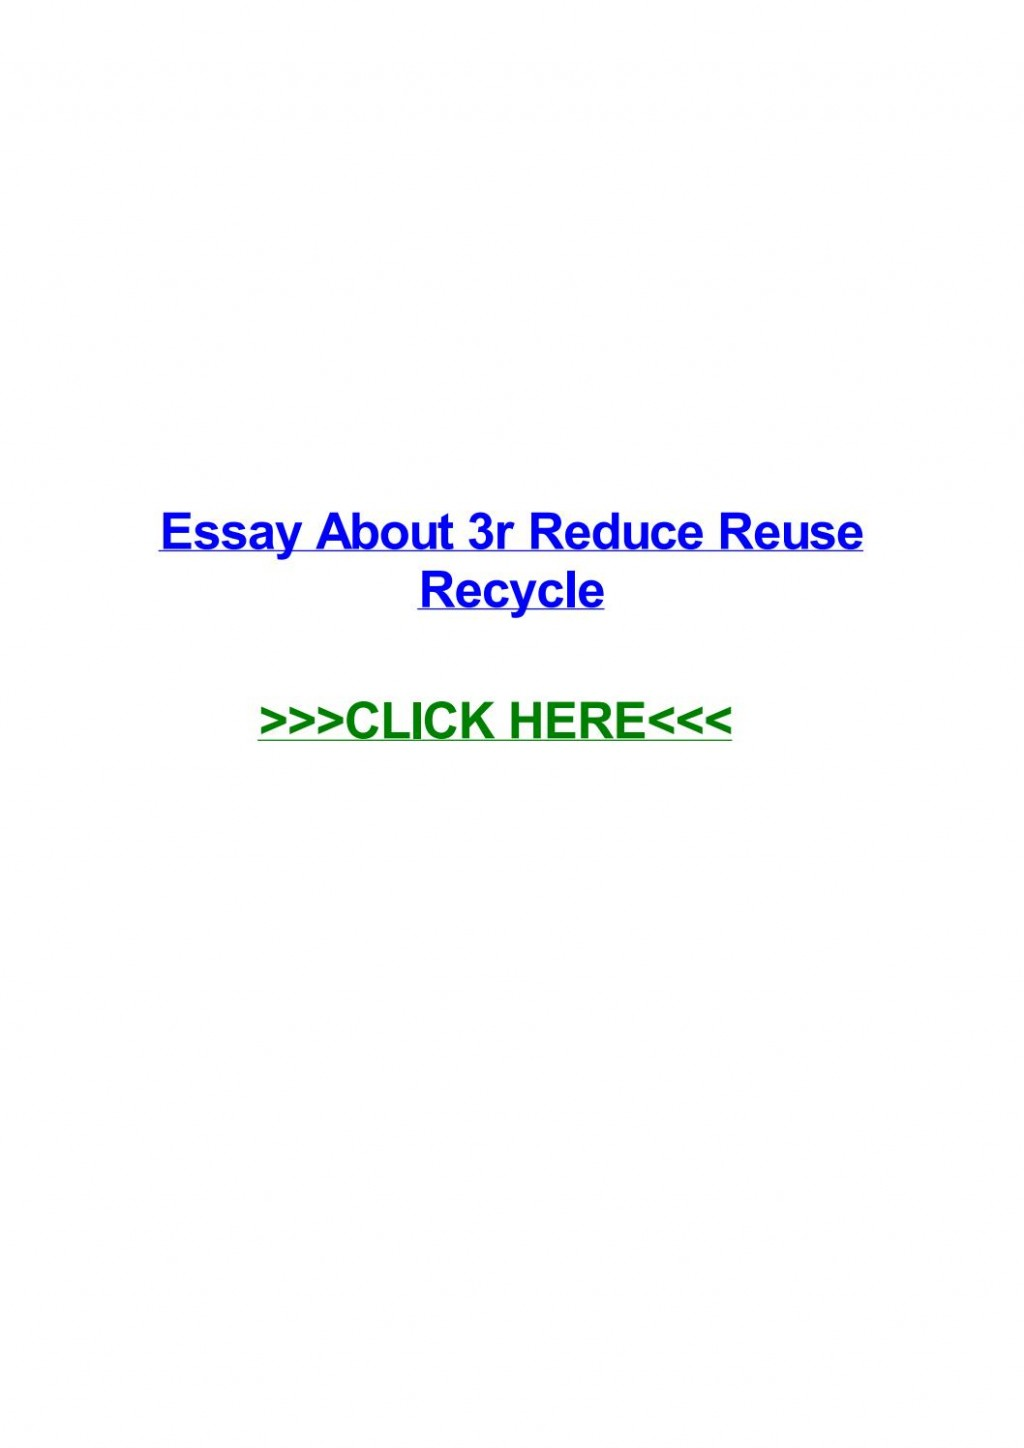 008 Essay On Reduce Reuse Recycle Example Page 1 Stirring Short In Hindi English Large